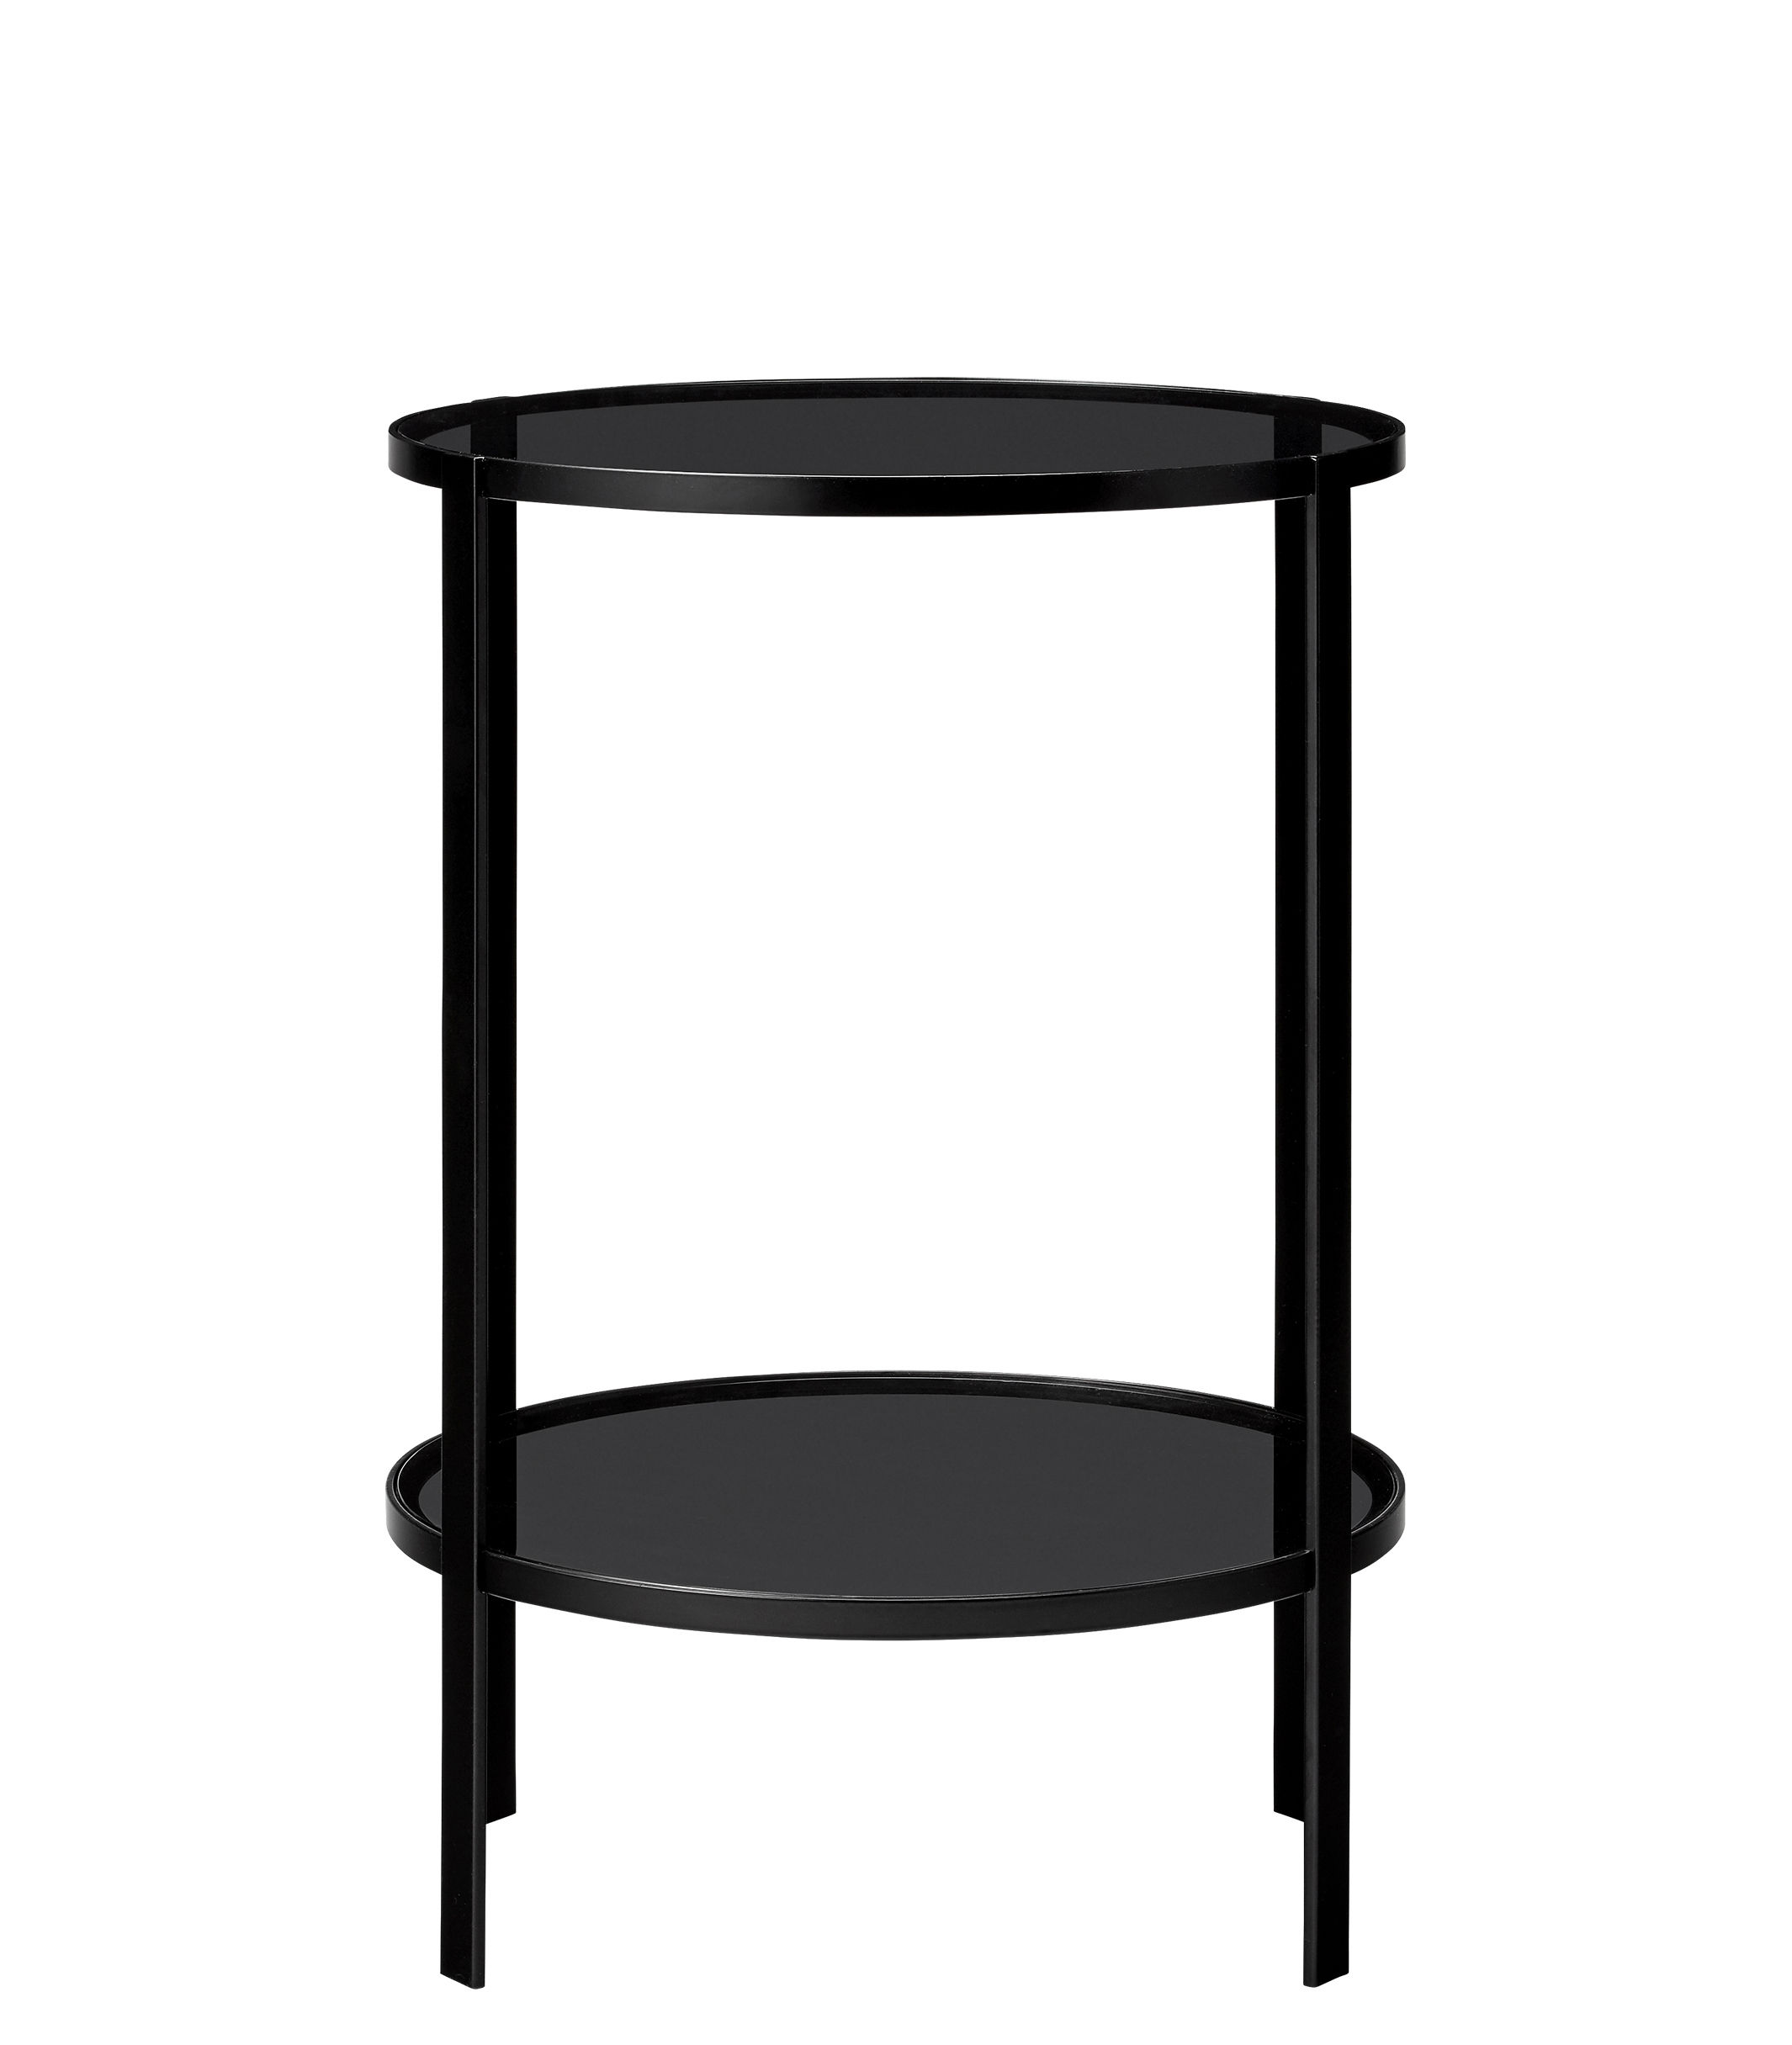 Furniture - Coffee Tables - Fumi End table - / Ø 40 x H 58 cm by AYTM - Black - Lacquered iron, Soak glass